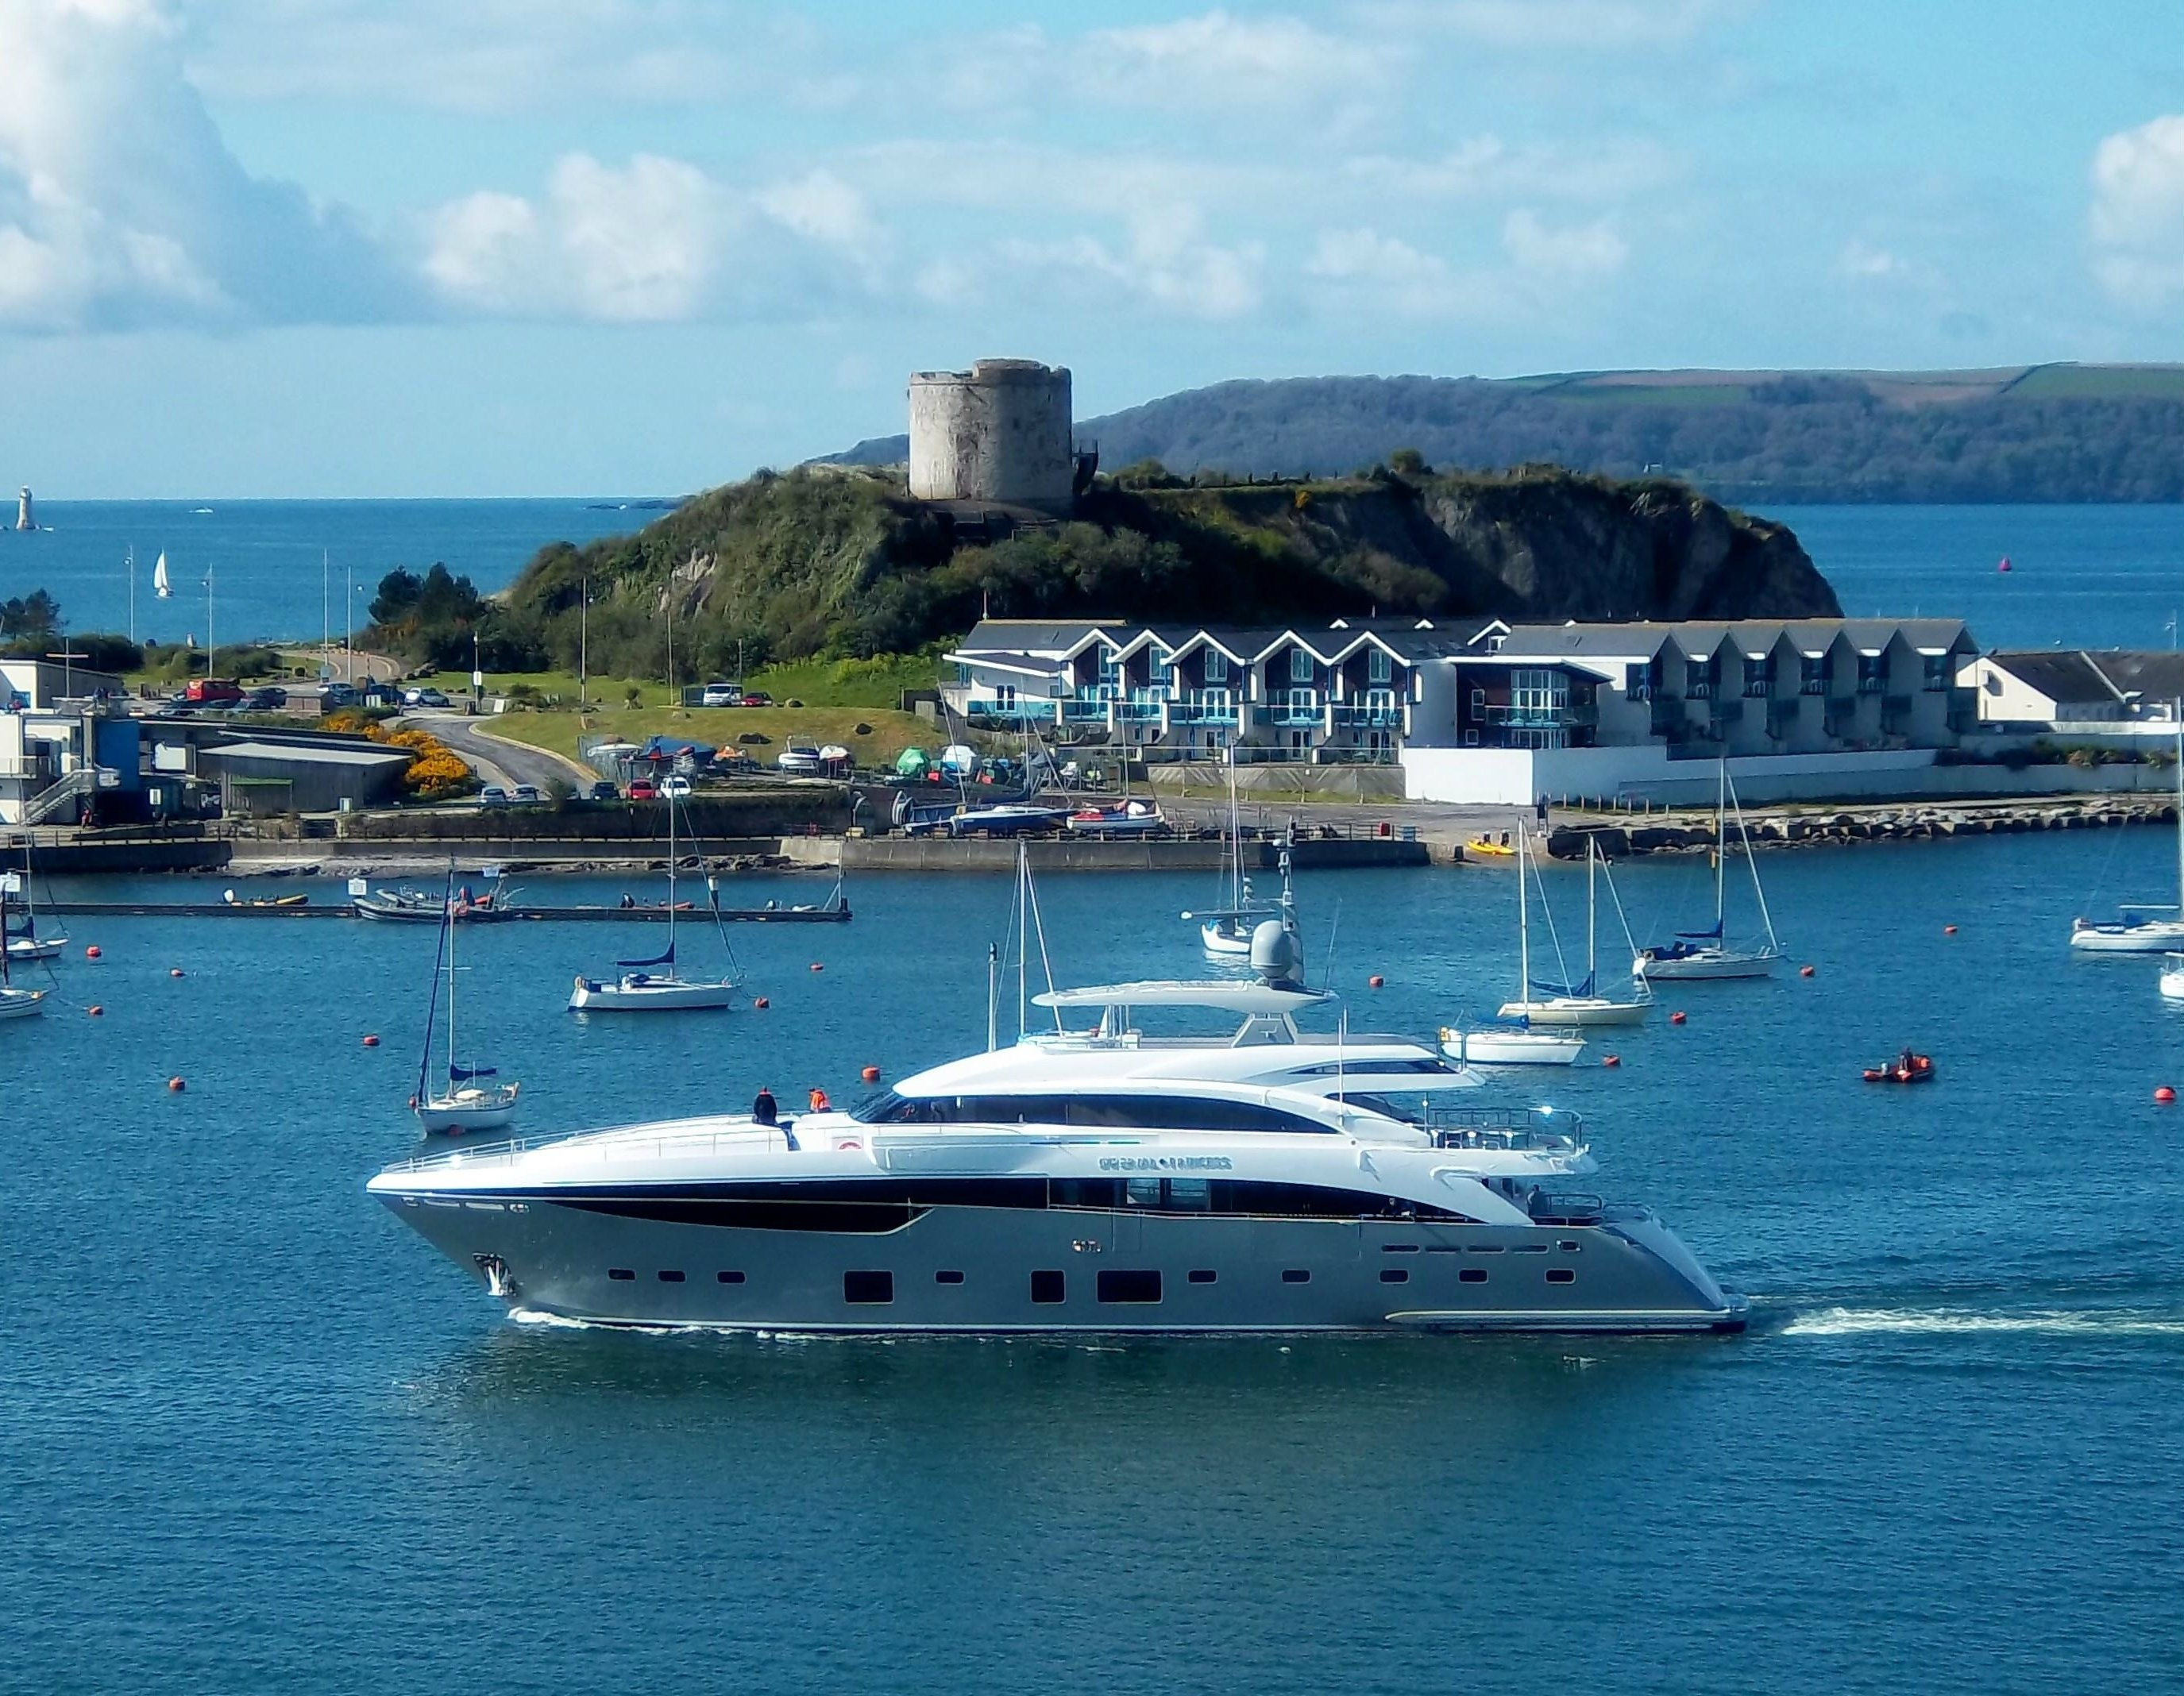 The 40m Sunseeker Luxury Yacht IMPERIAL PRINCESS BEATRICE